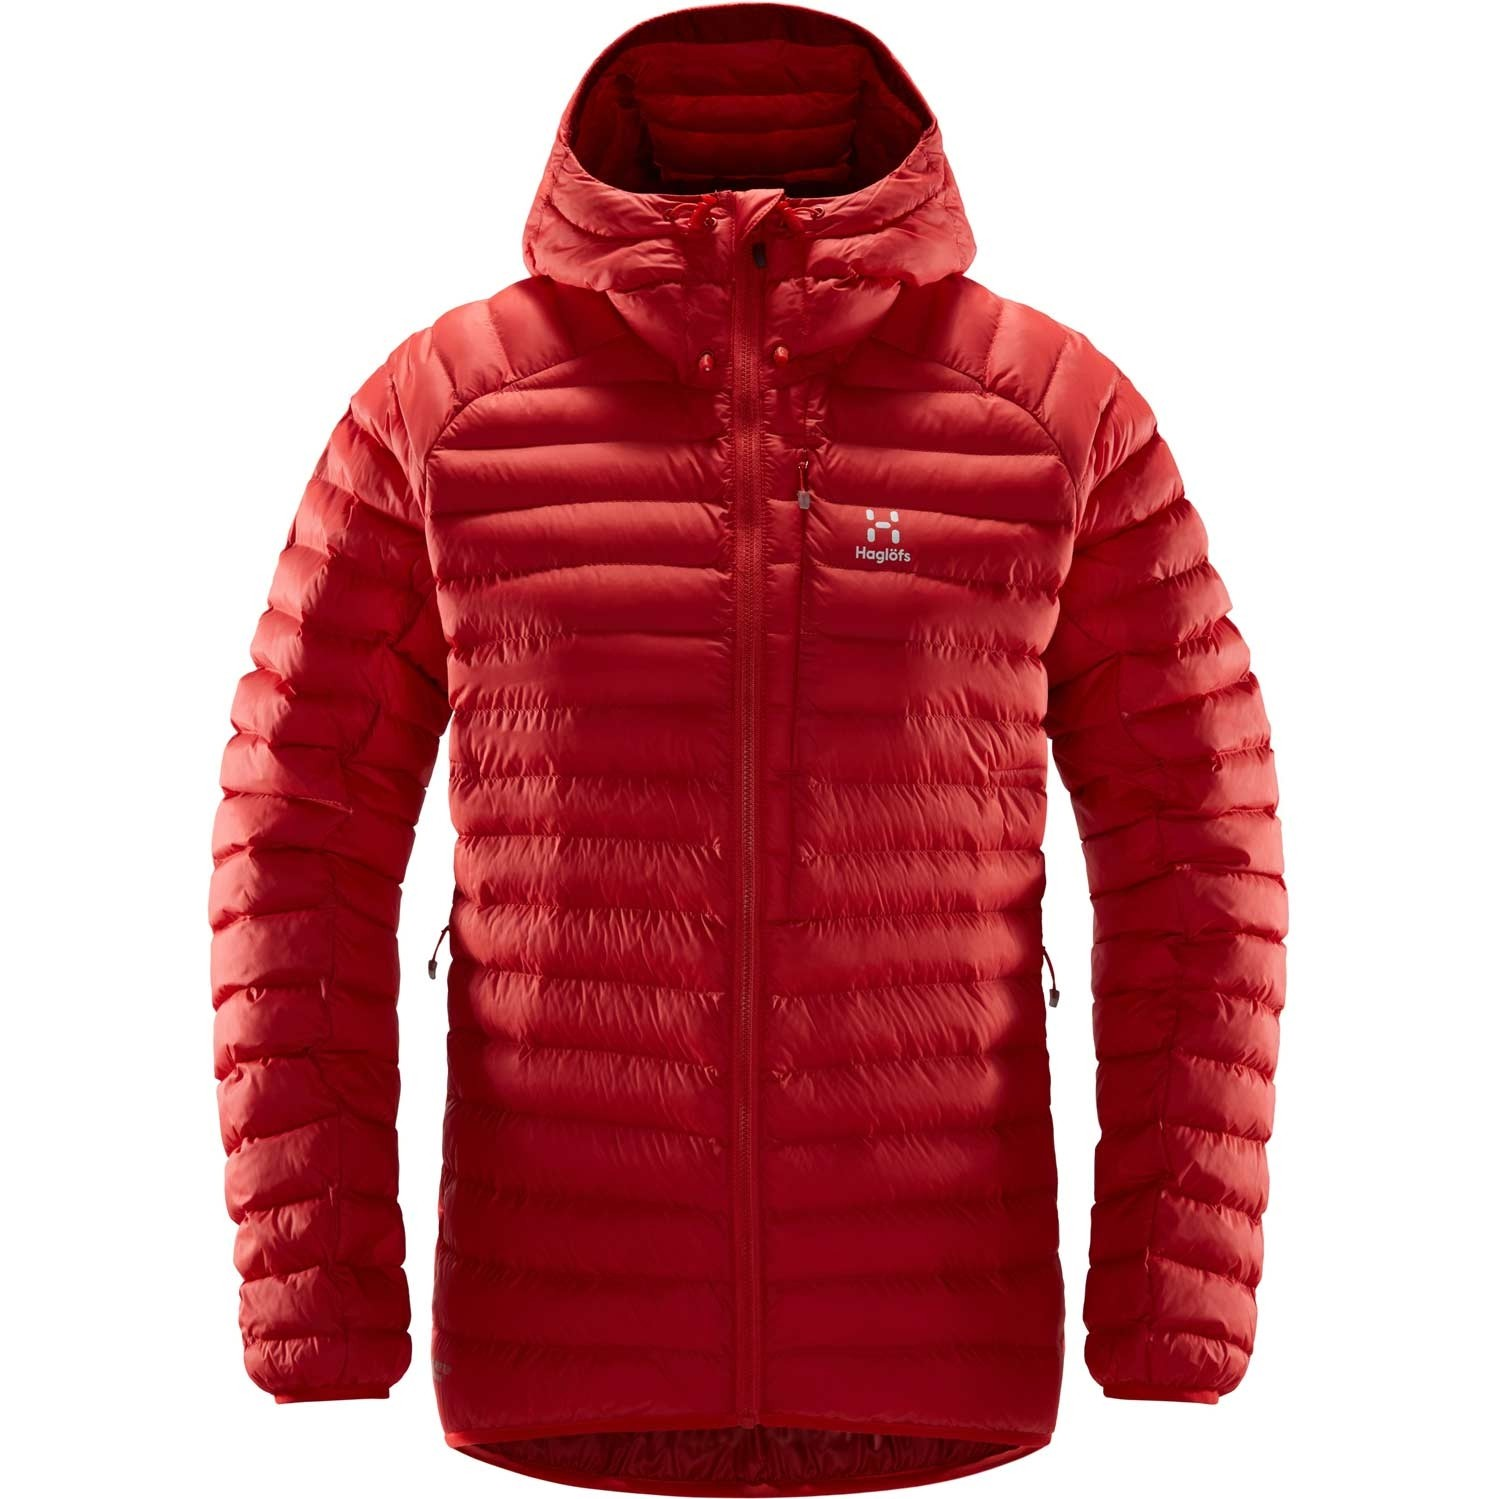 Haglofs Essens Mimic Hood Women's Jacket - Hibiscus Red/Brick Red